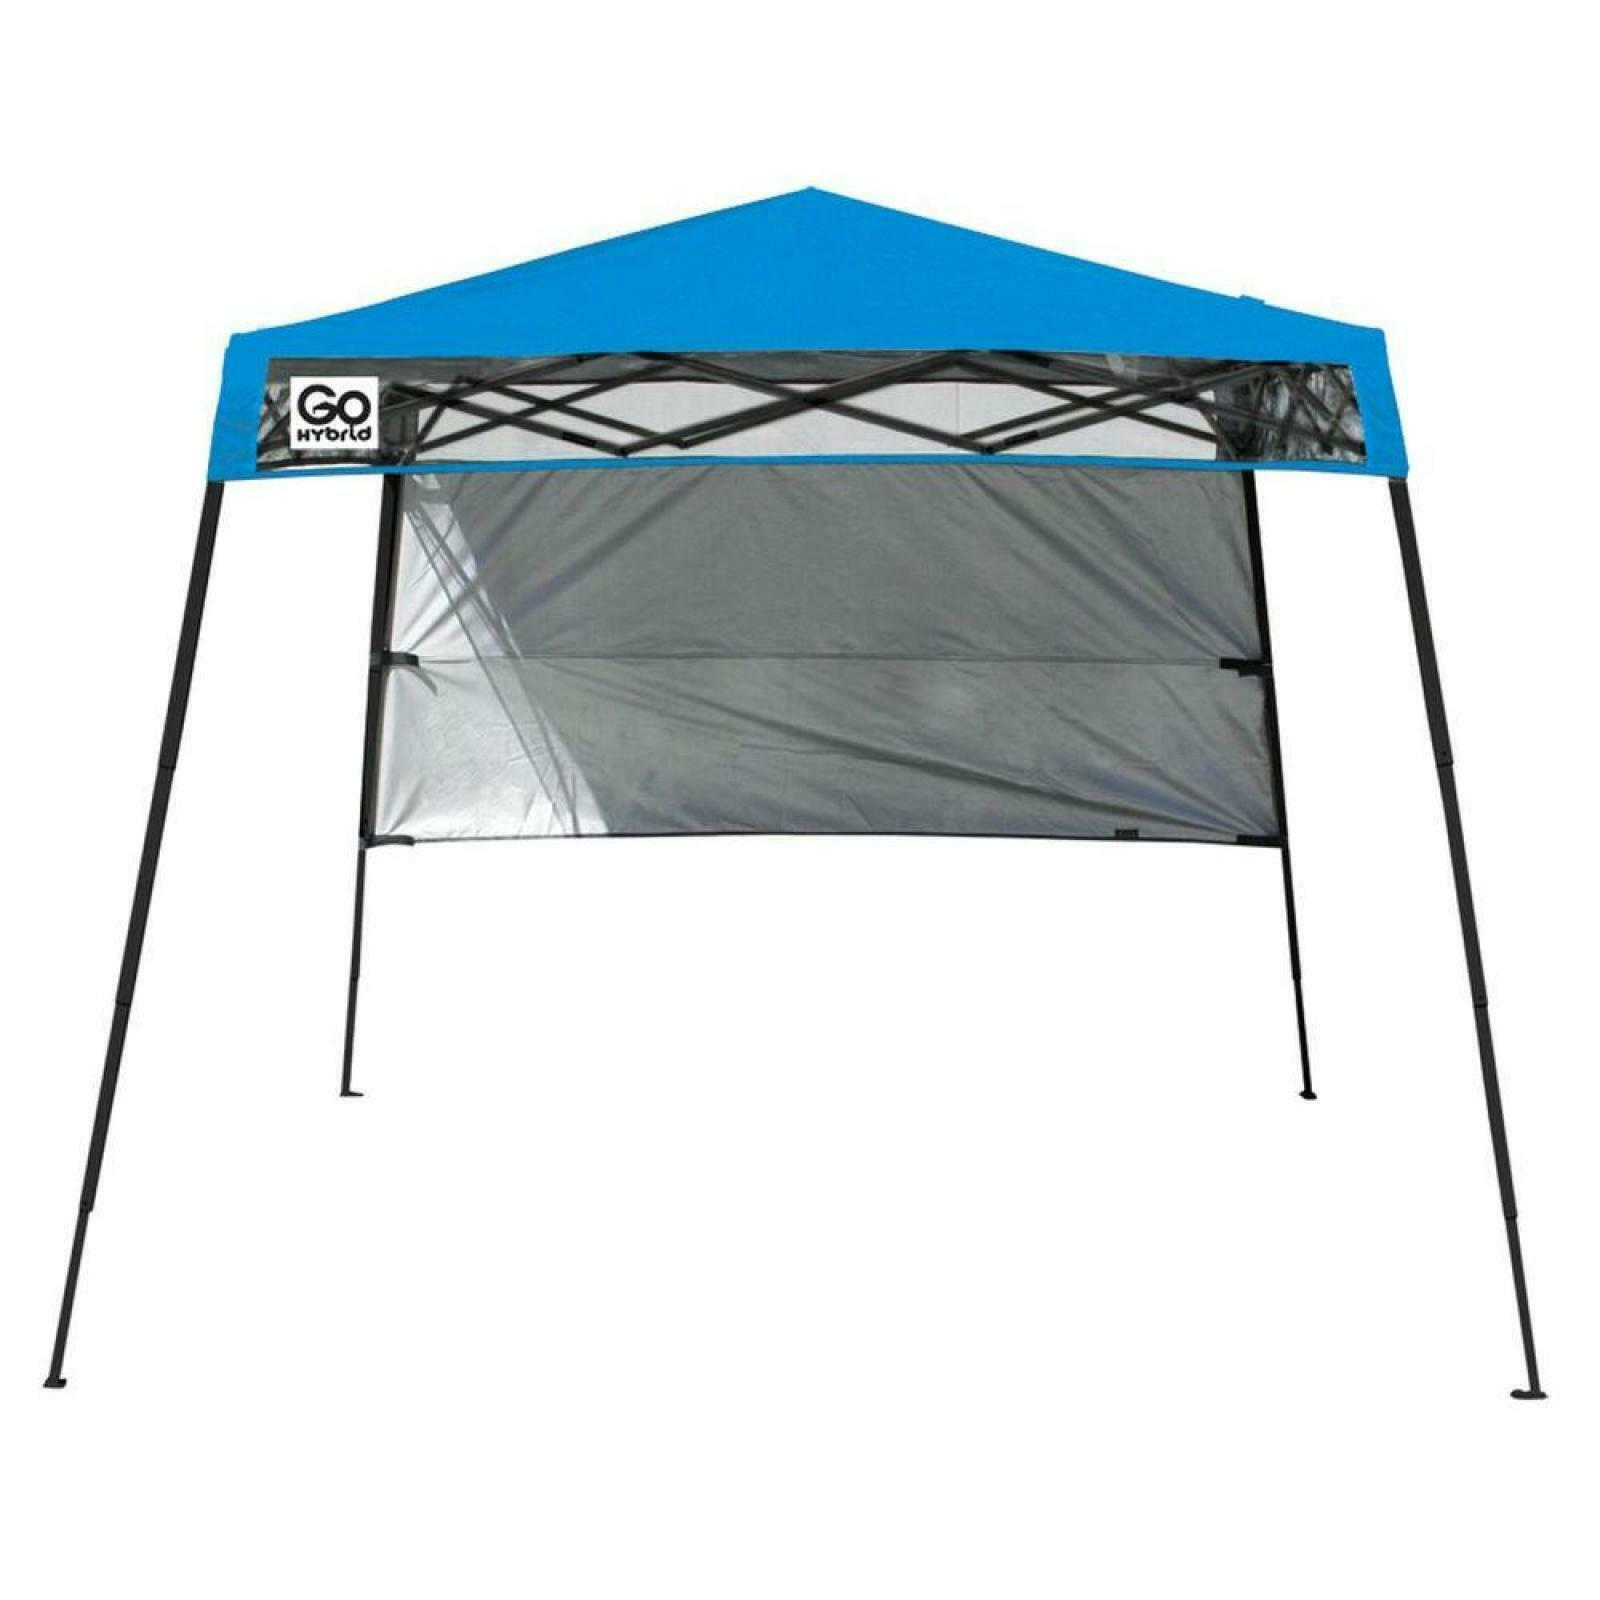 Portable Pop up Canopy 6 ft x 6 ft Collapsible Adjustable Height Storage borsa